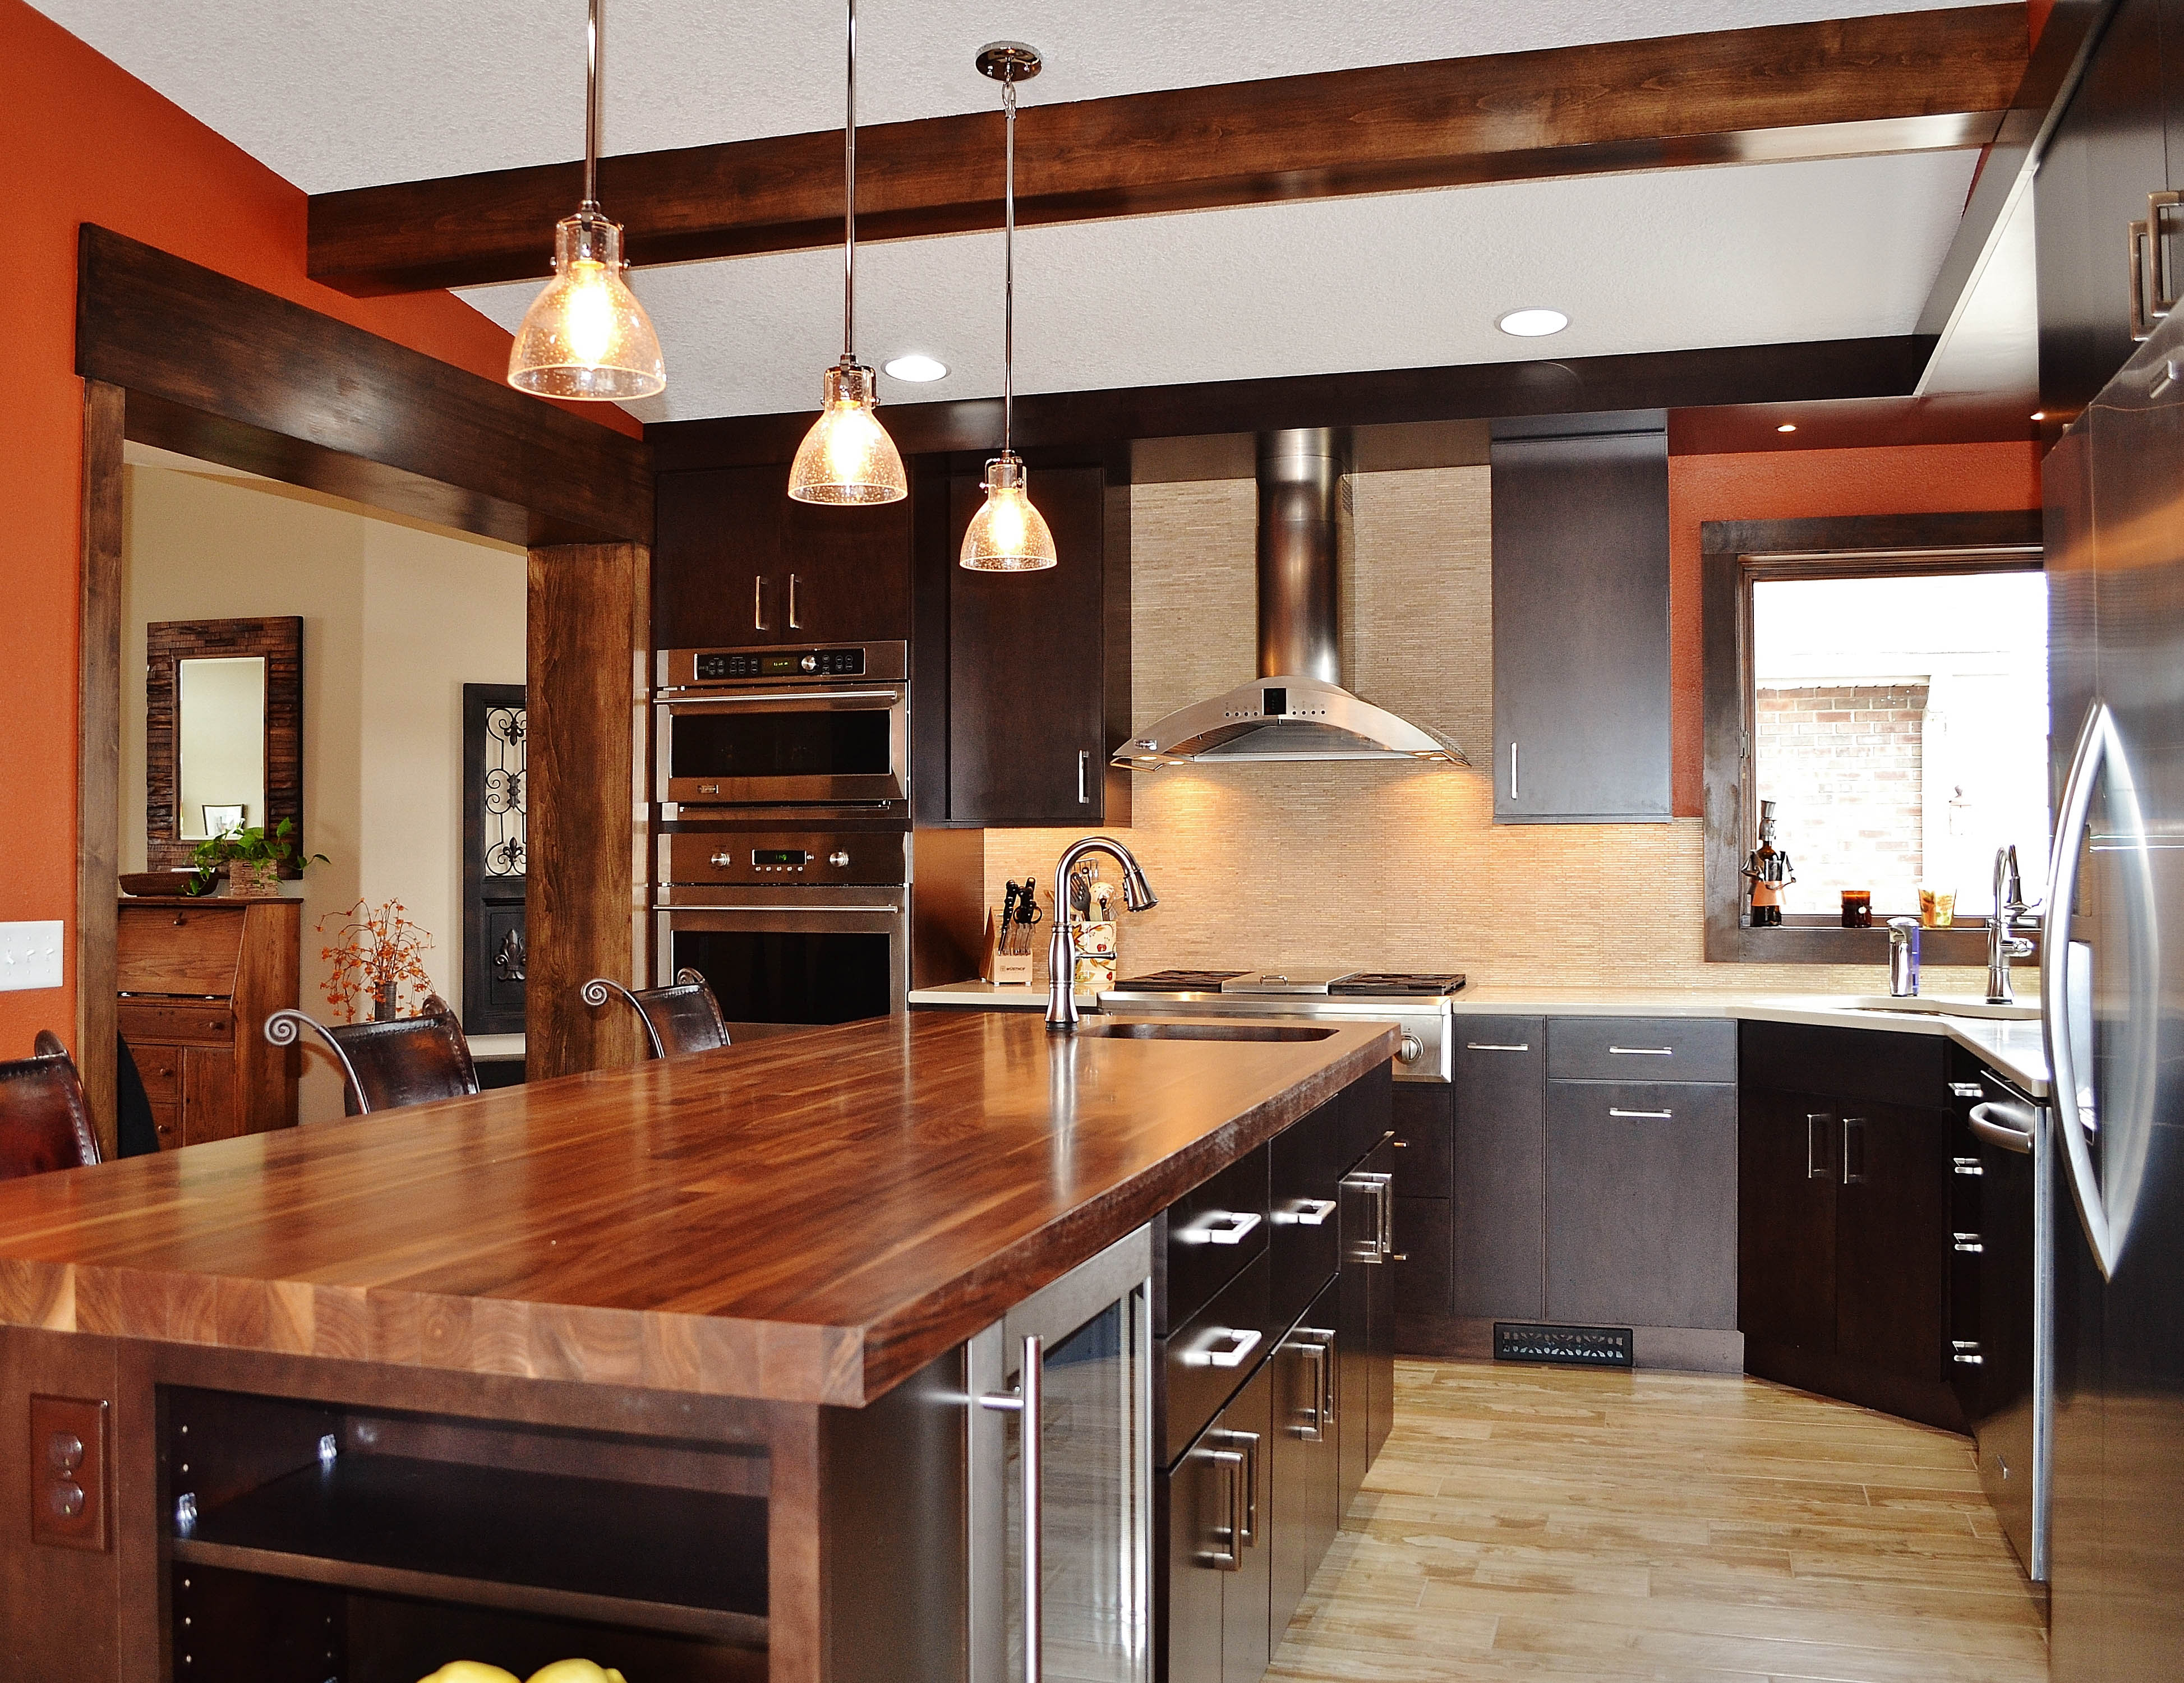 A Kitchen Remodel With Midrange Finishes And Appliances Would Cost $63,629  In Des Moines, Increase The Homeu0027s Value By $32,361, For A 50.9 Percent  Return.